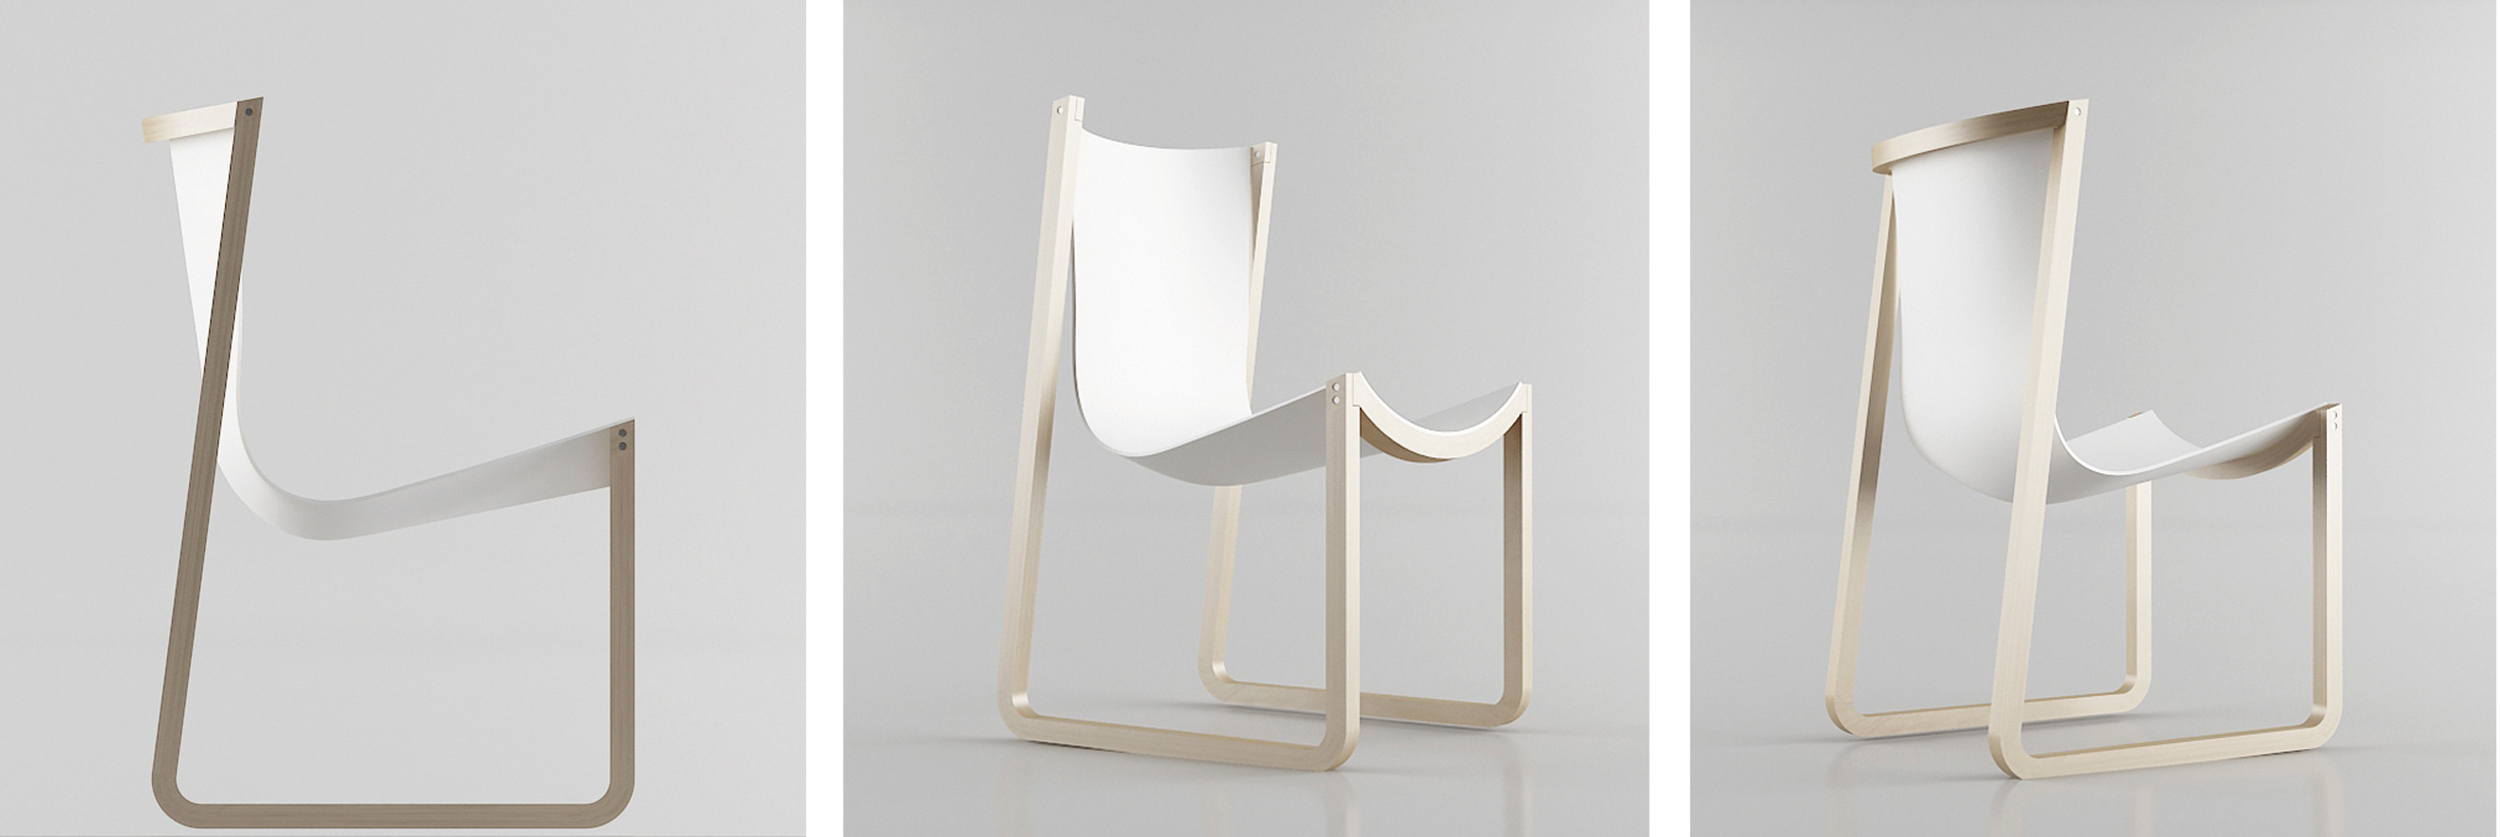 King_Roselli_PCR_chair_02.jpg